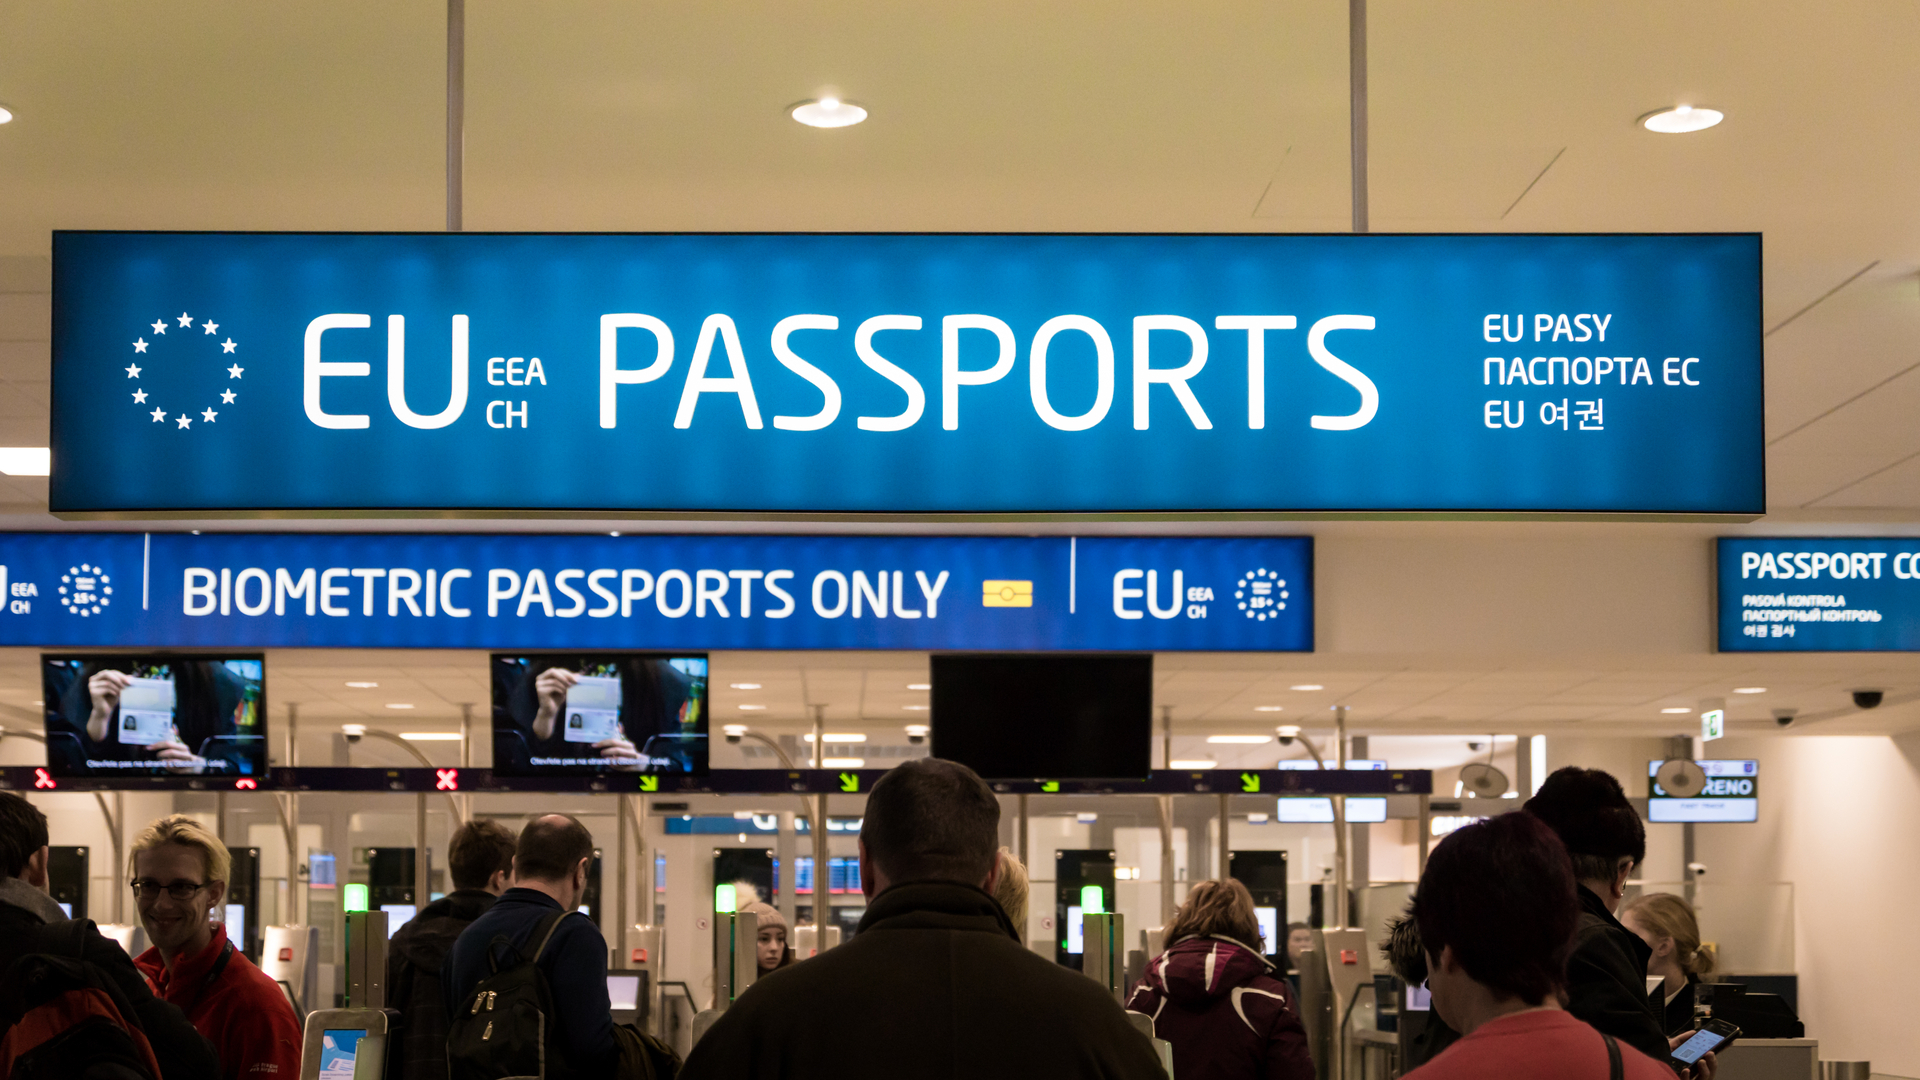 Home Office app for EU citizens vulnerable to hackers